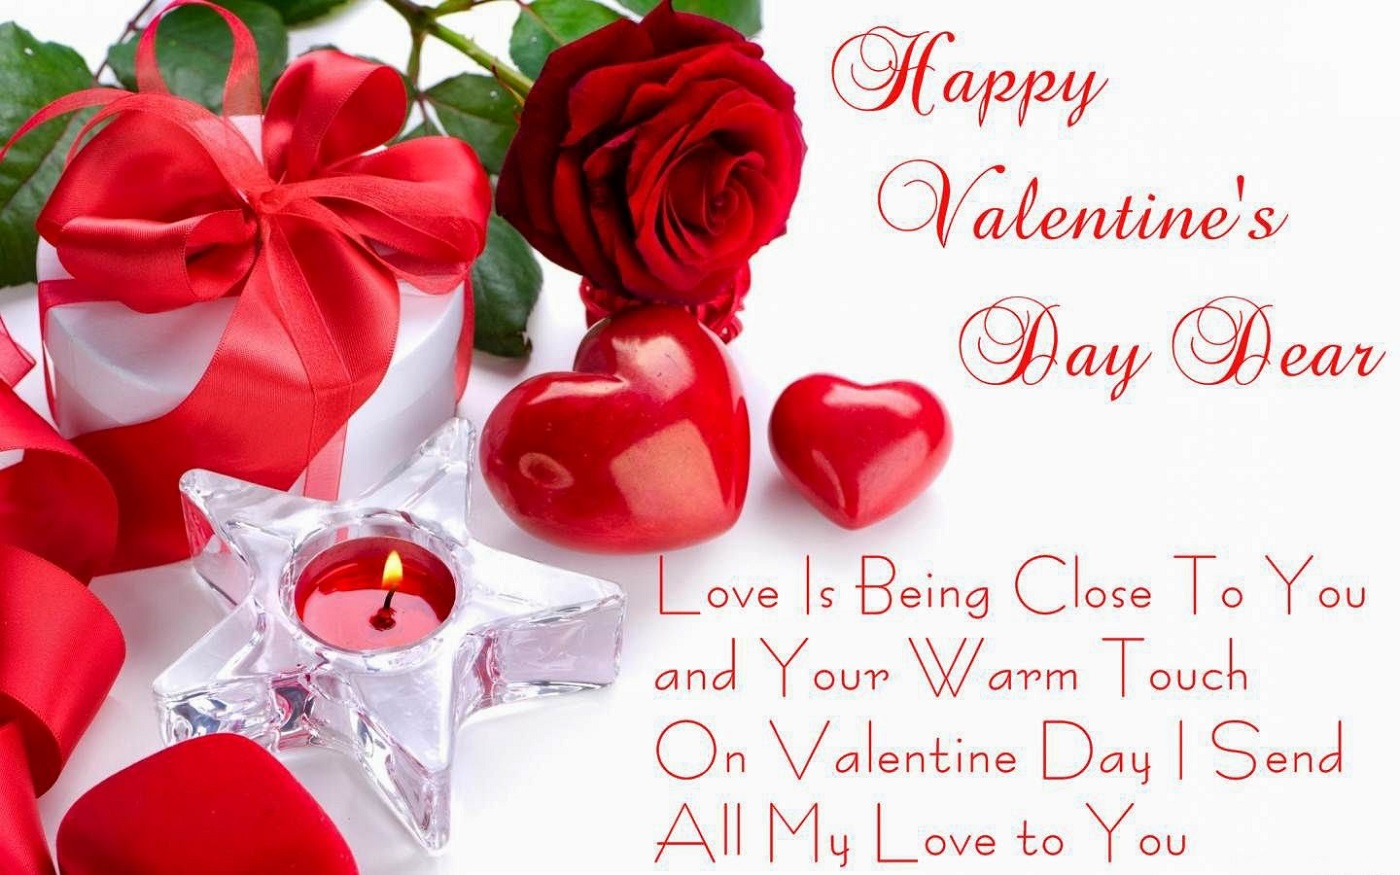 Happy Valentines Day Images Wallpapers HD High Quality  Happy